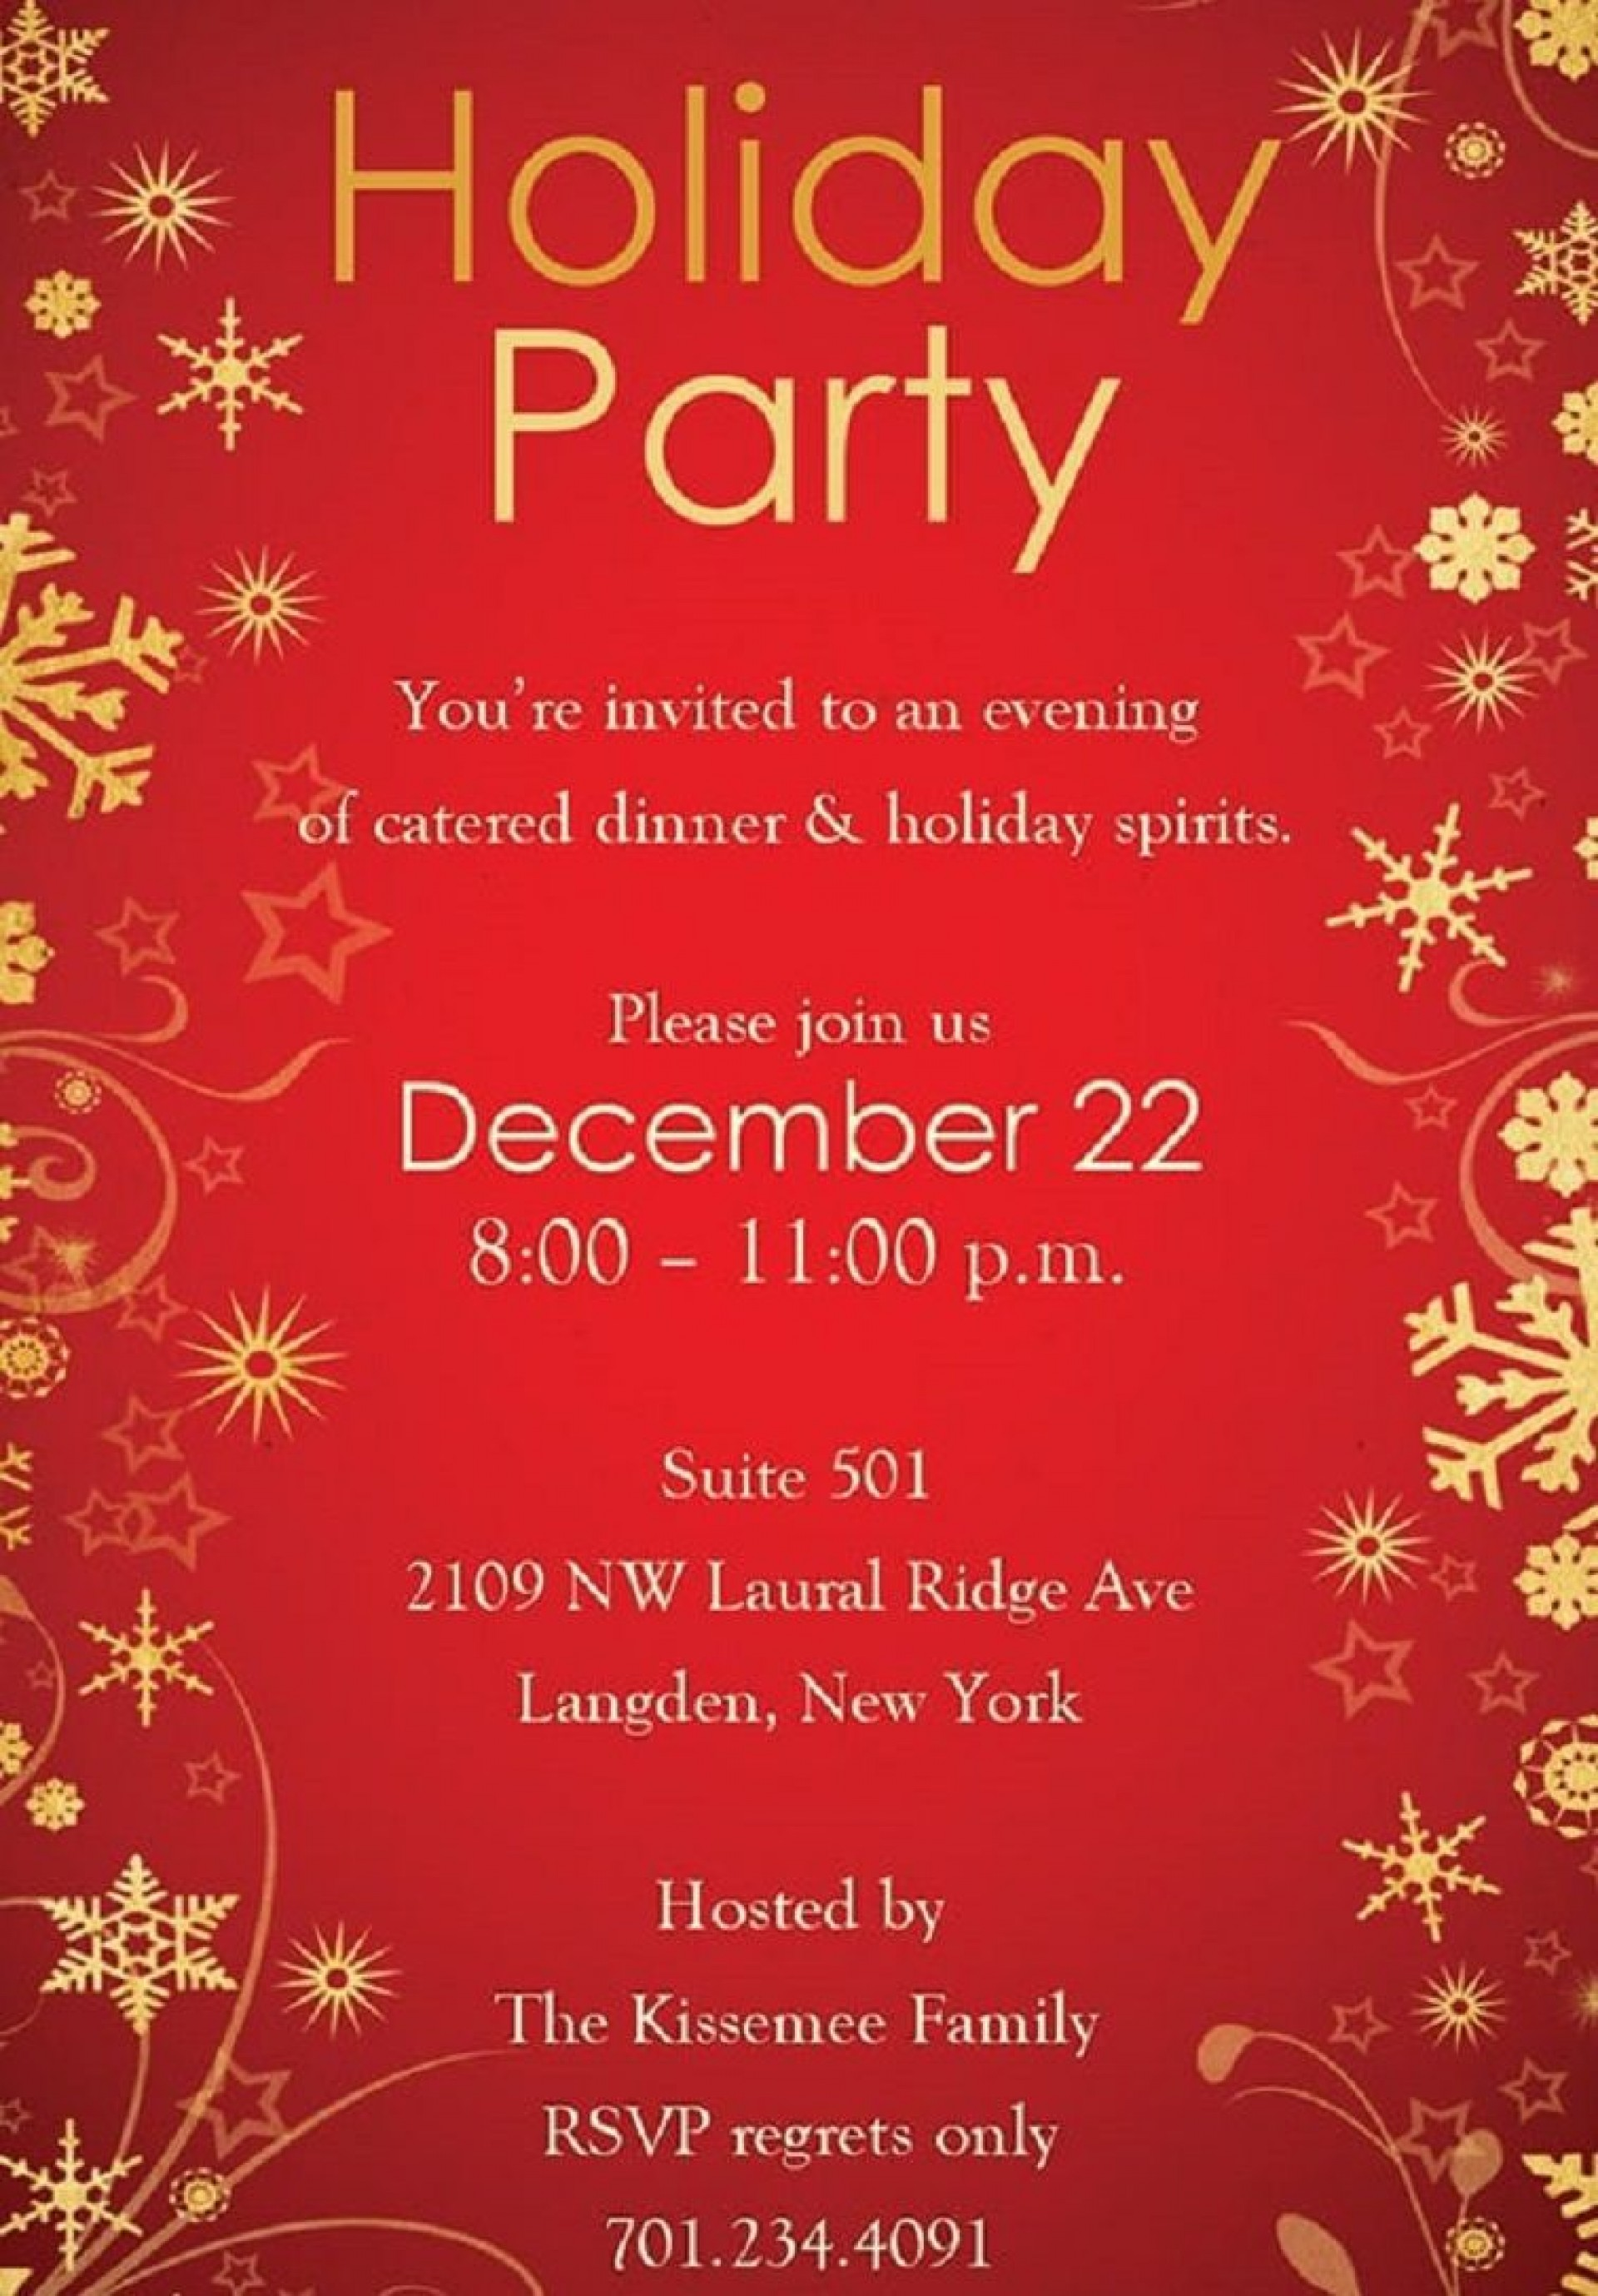 003 Singular Free Holiday Invite Template Example  Templates Party Ticket For Email1920